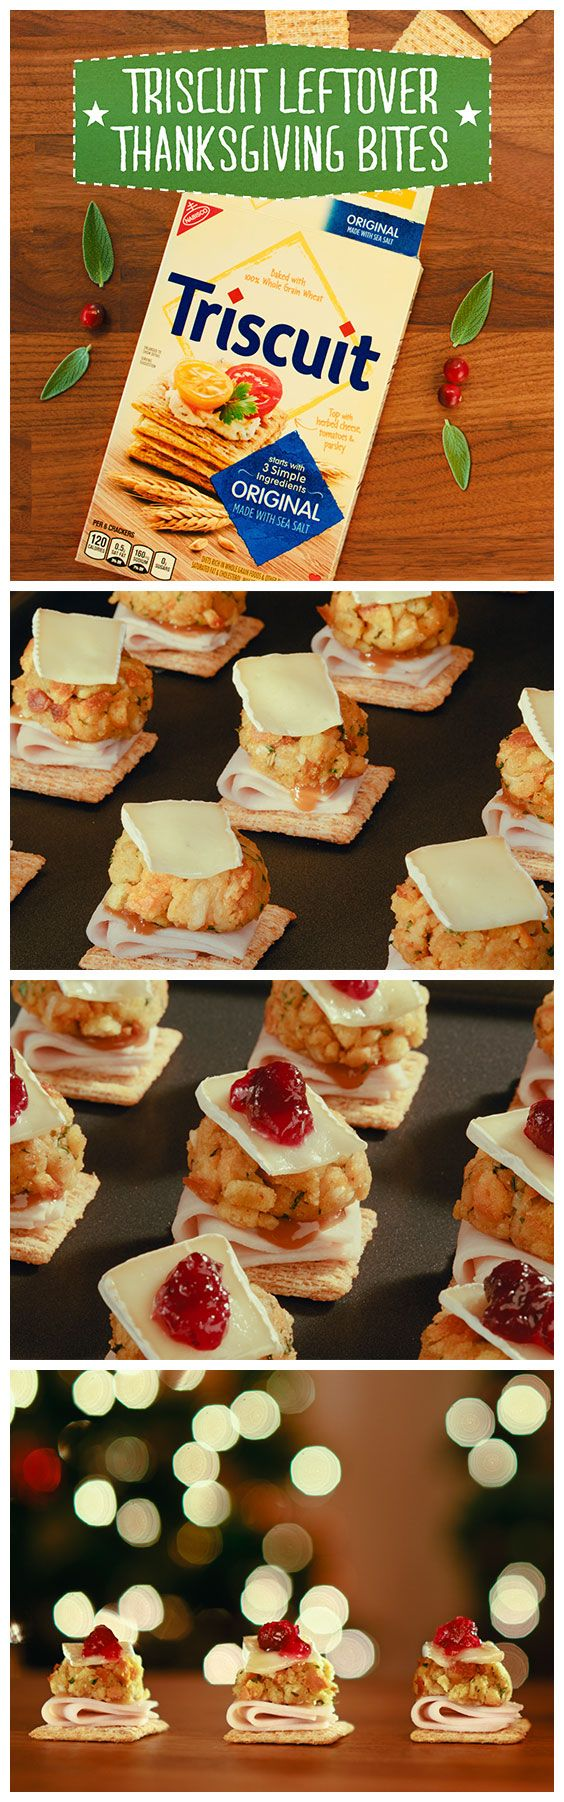 Treat your post-Thanksgiving guests to the joy & flavors of this special feast with the perfect combination of all their favorite leftovers! Heat oven to 350°F, then place TRISCUIT crackers in single layer on a baking sheet and top with a slice of cooked turkey breast, gravy and stuffing. Bake for 3-5 min. or until heated through, then cover with a slice of Brie and bake for 1 more min. Finish it off with a little cranberry sauce & enjoy!